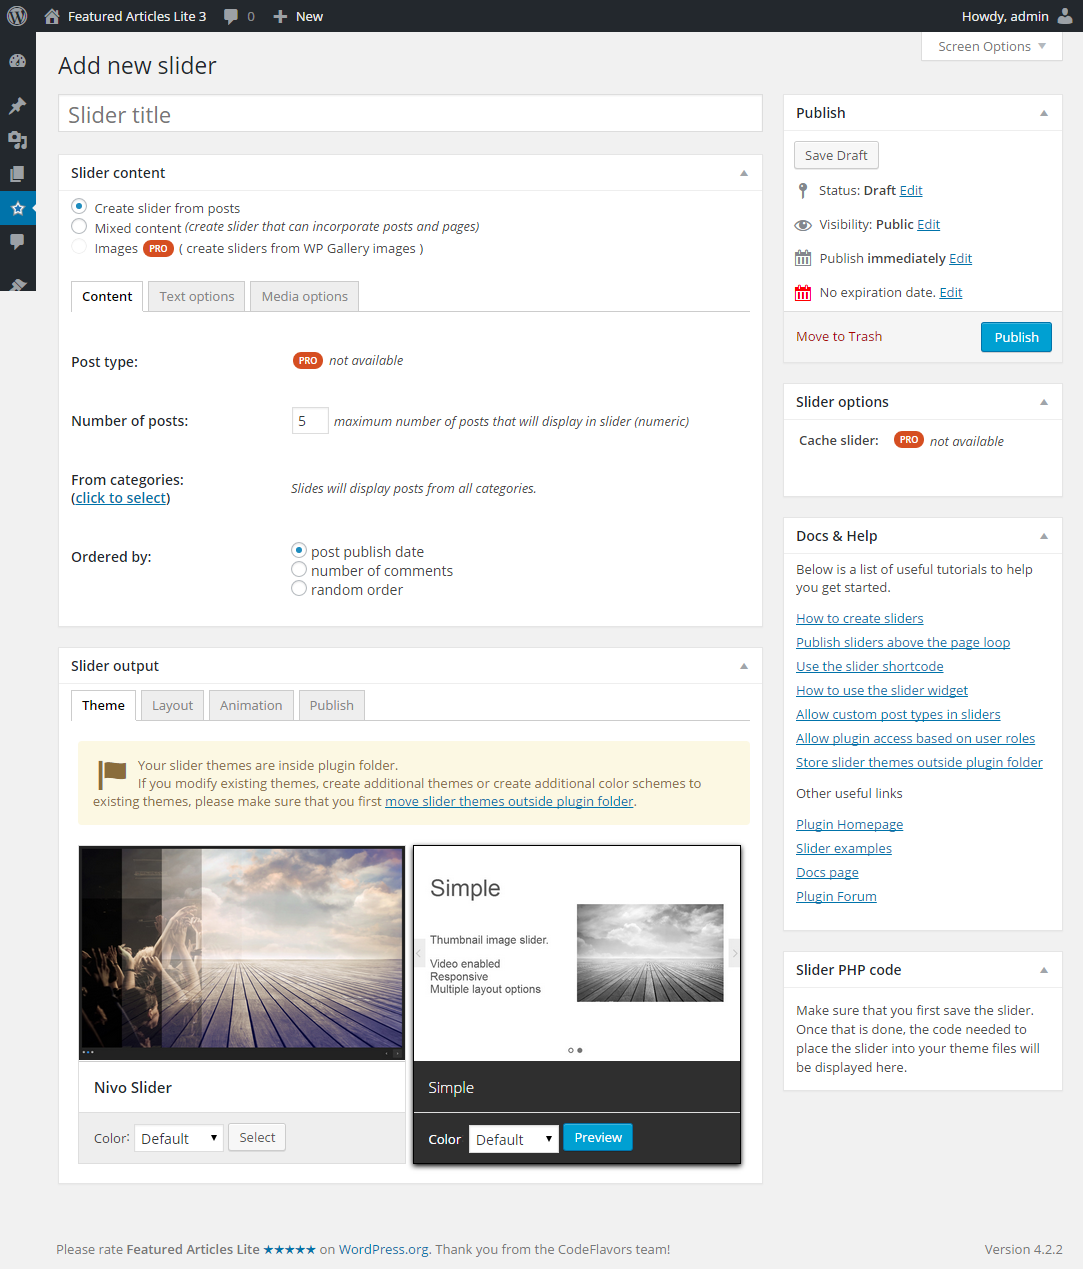 featured-articles-lite screenshot 4